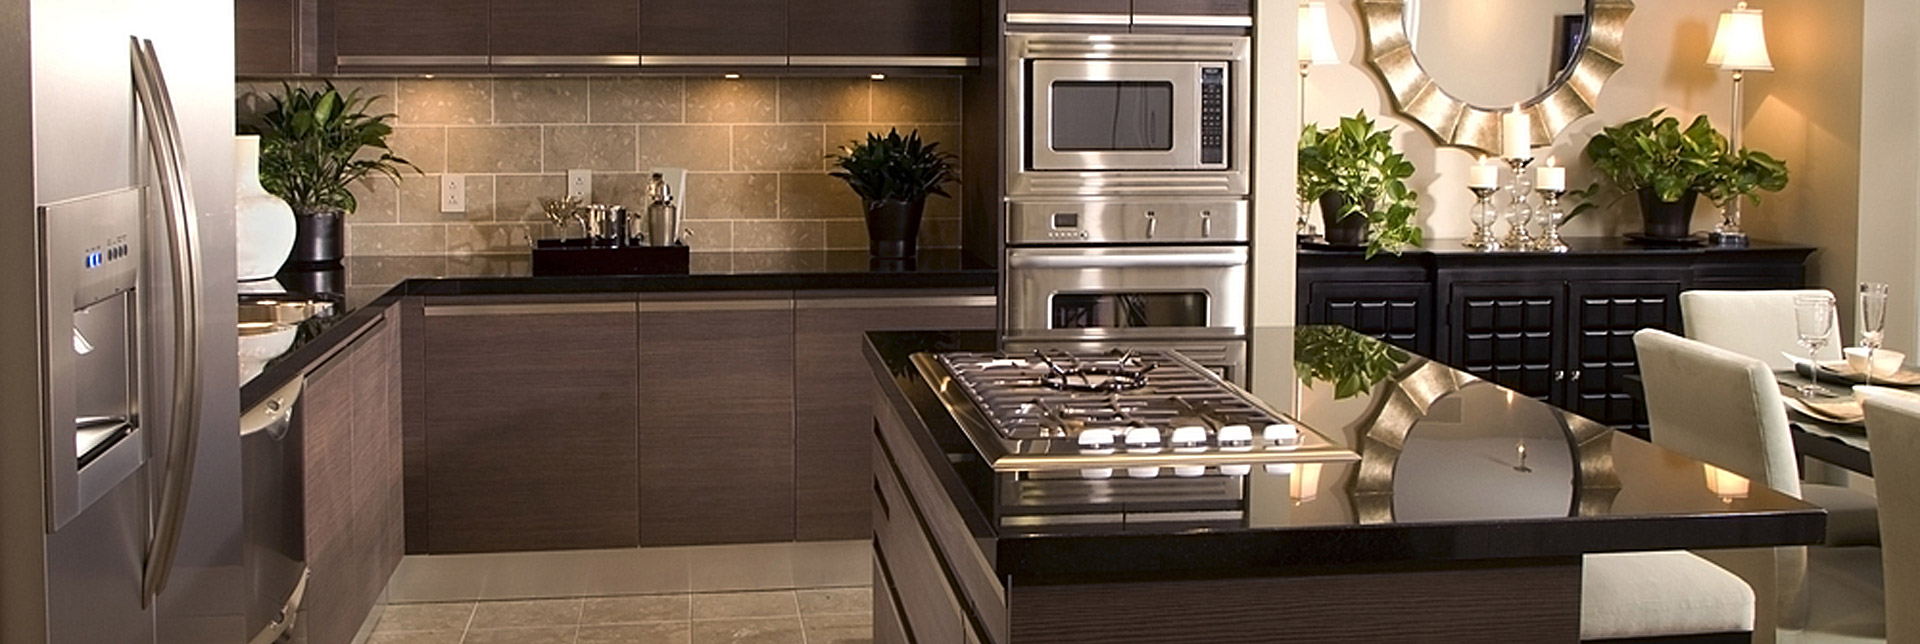 icondy-kitchens-canberra